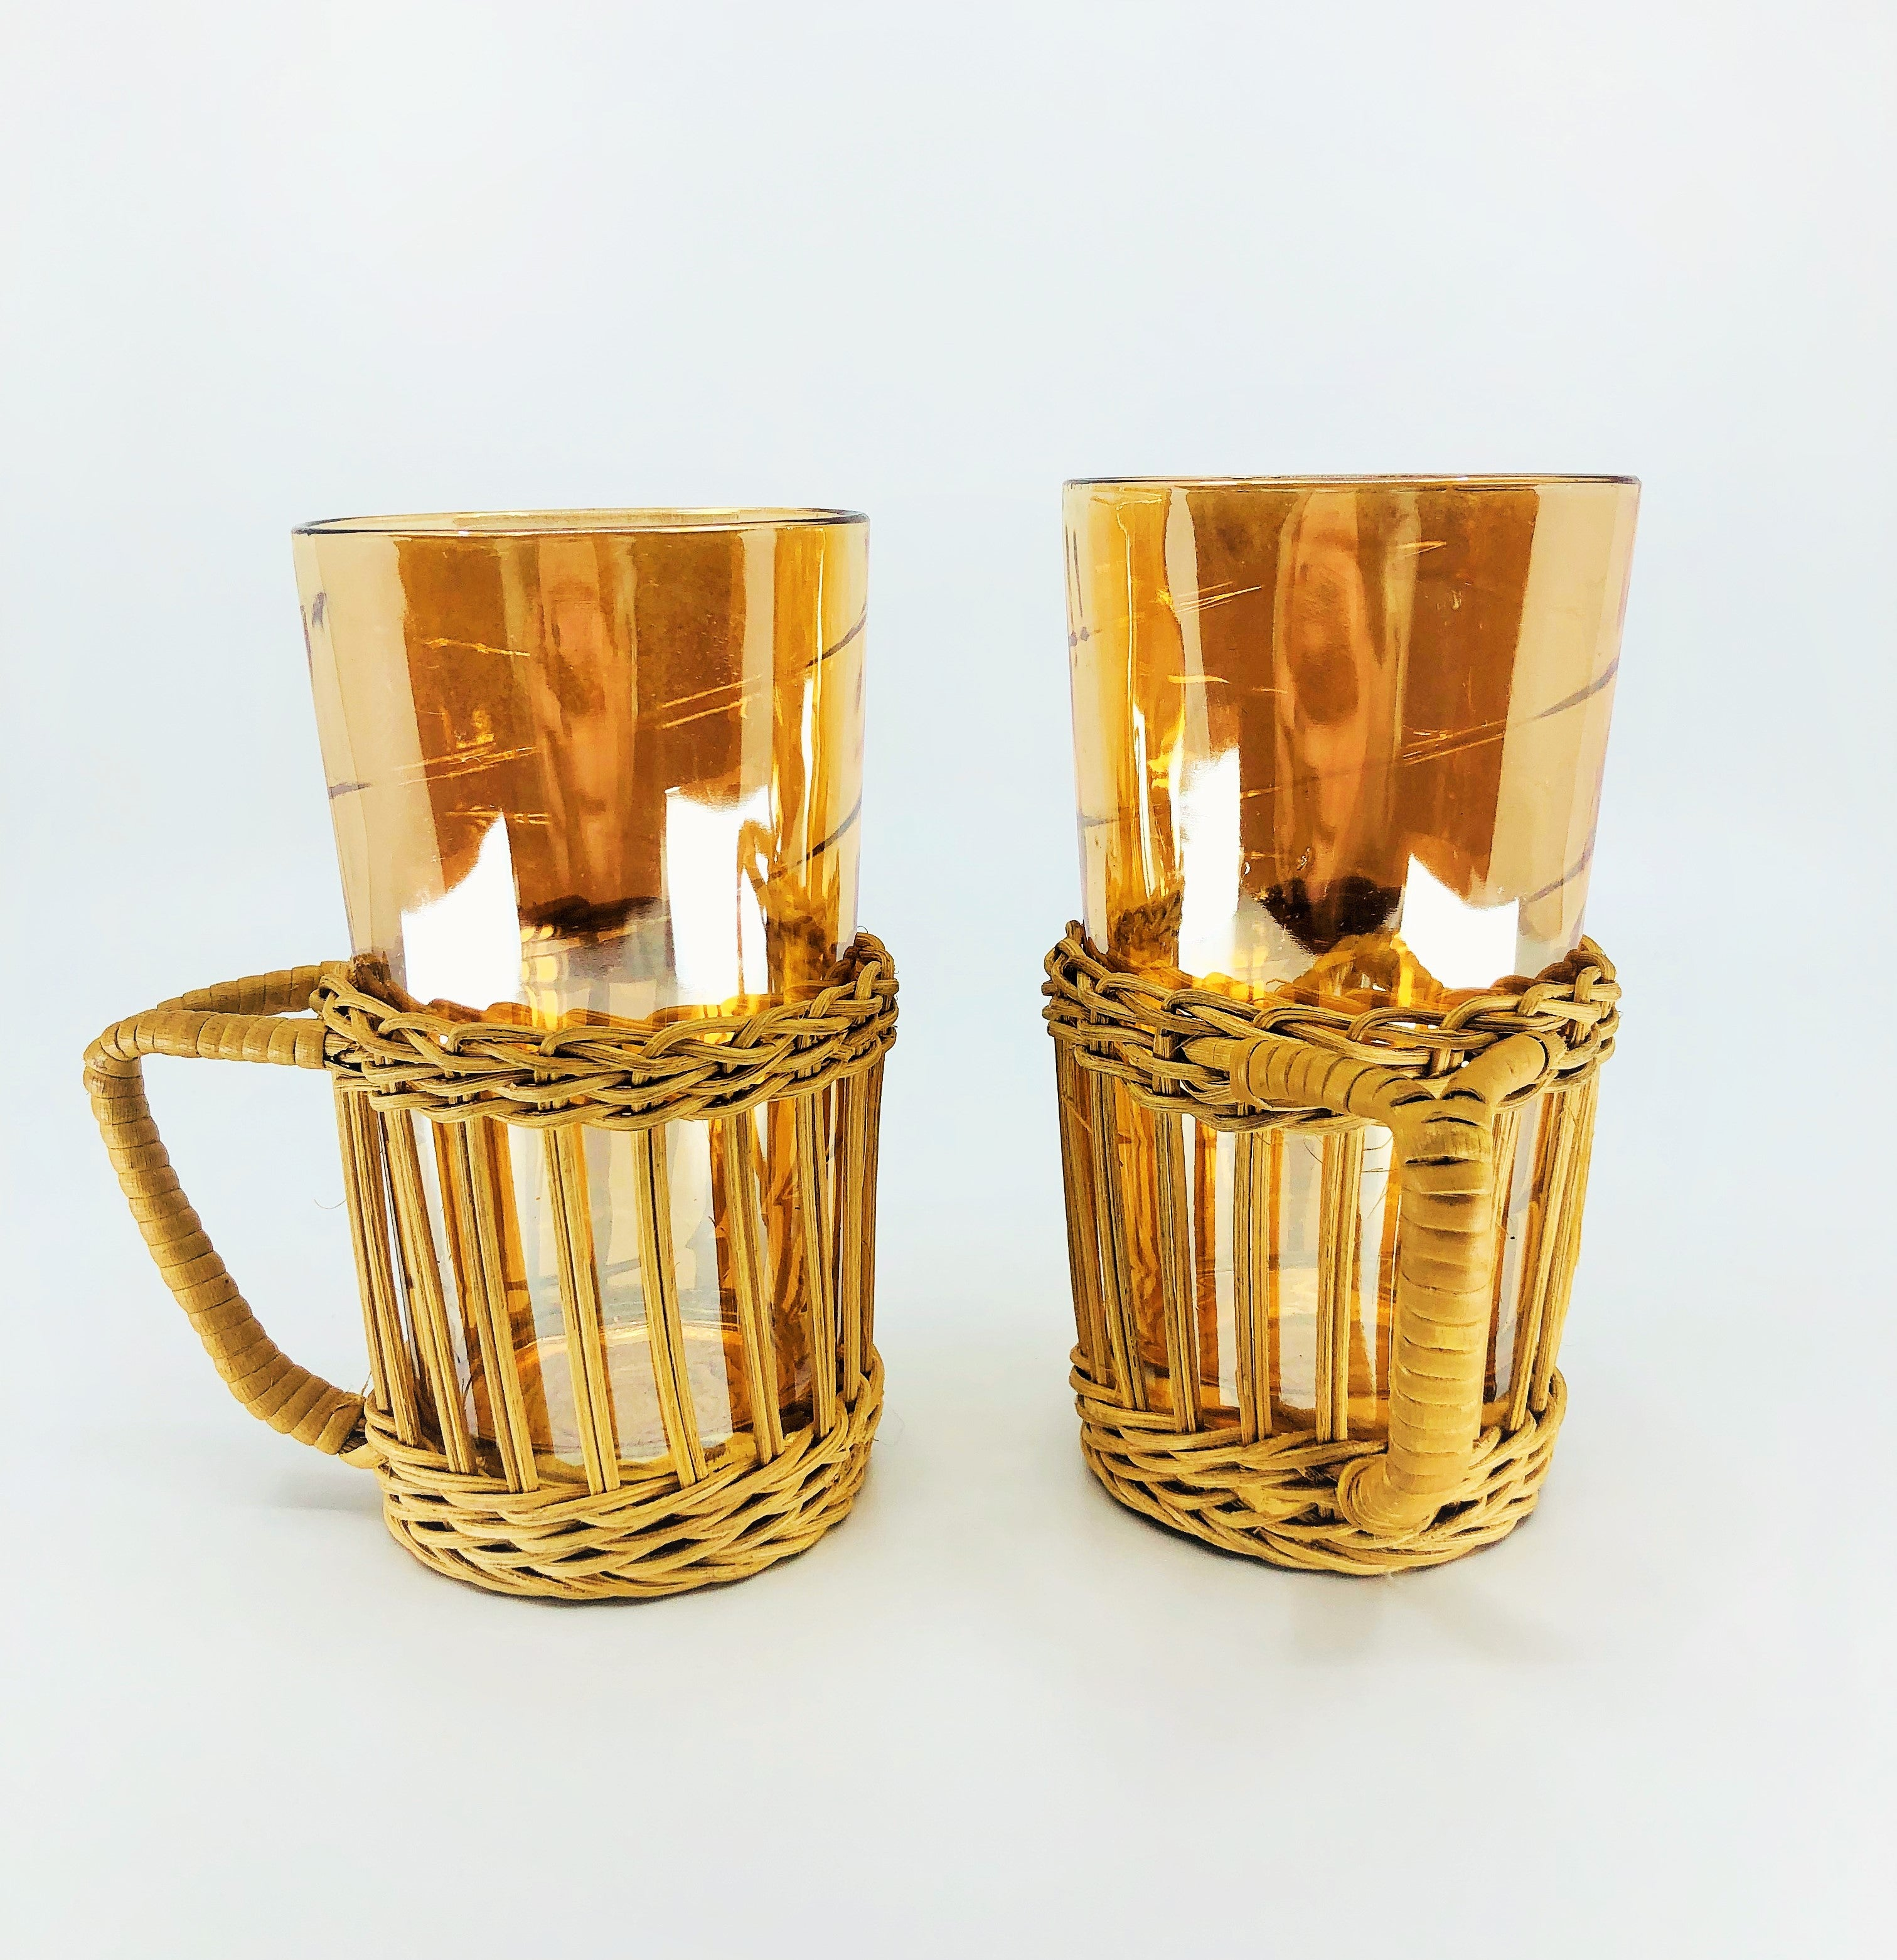 1960s Jeanette Glass Iridescent Marigold Highball Glasses, Set in Wicker Handles